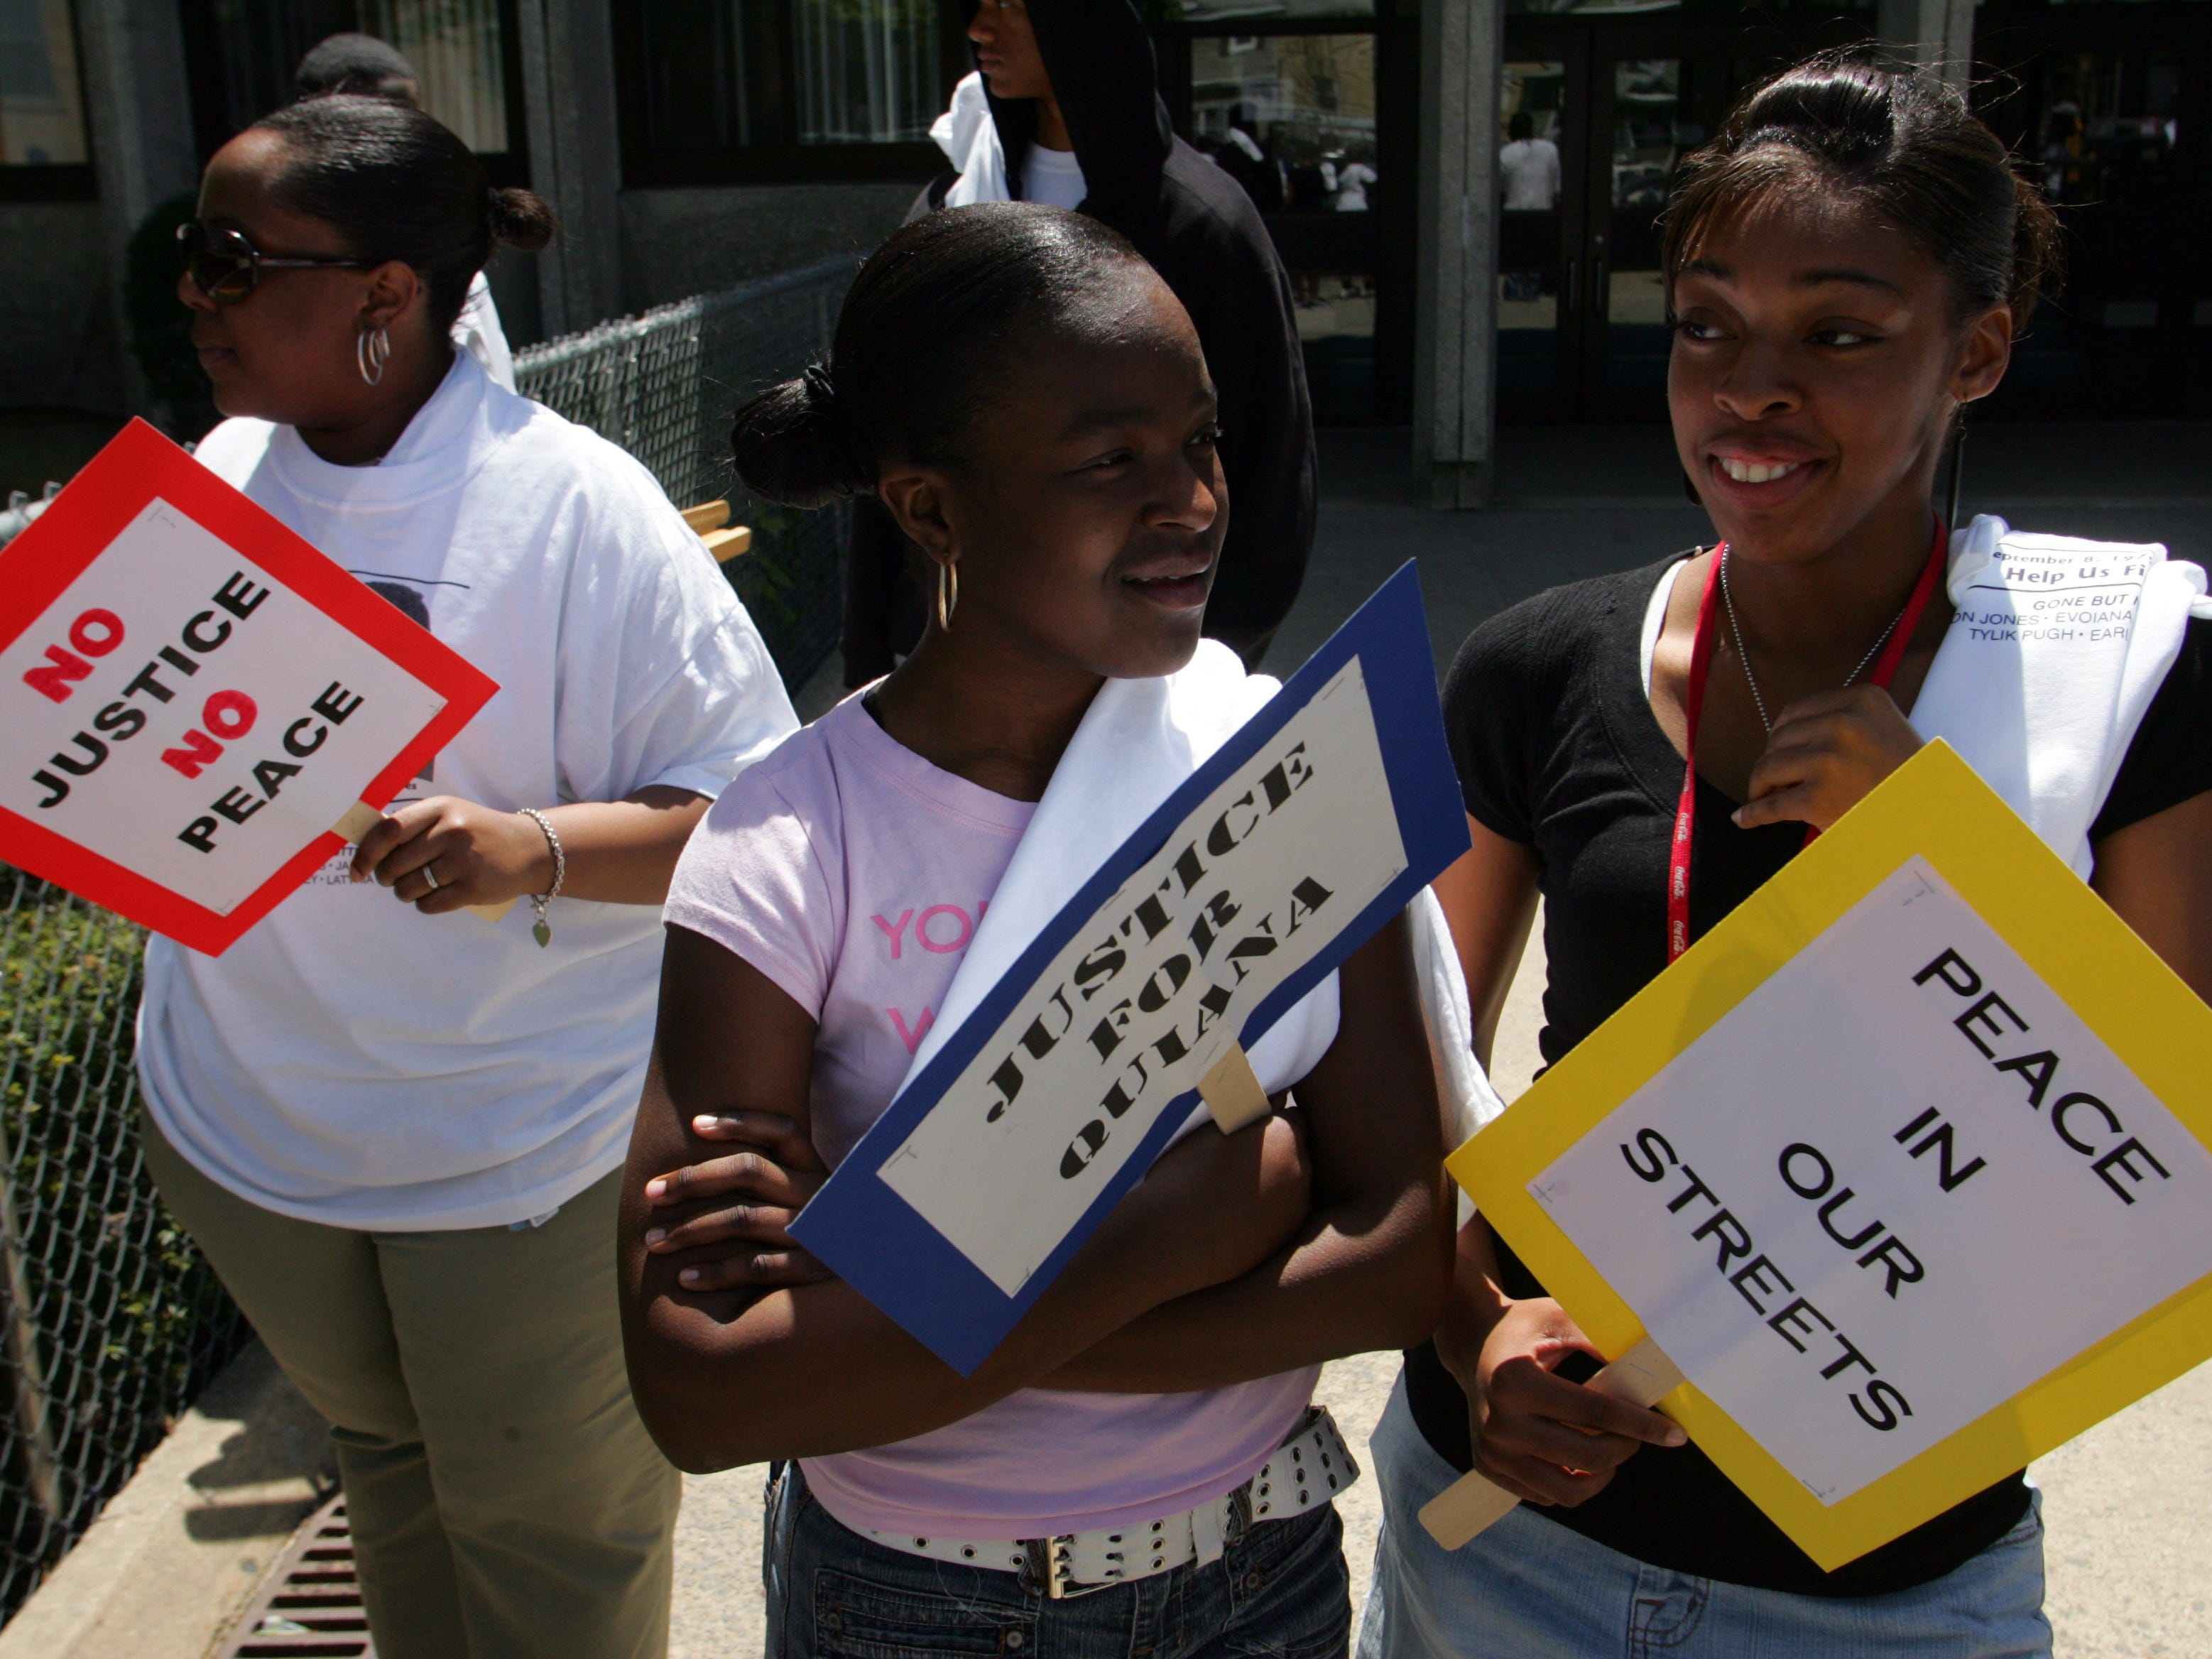 Asbury Park 05/05/07 -- Nicole Young, Asbury Park, left to right, Ashley Hosea, 14, Neptune, and LaTasia Ivory, 15, Neptune, hold their signs before participating in the Justice for Quiana Dees march, in front of Asbury Park Middle School.